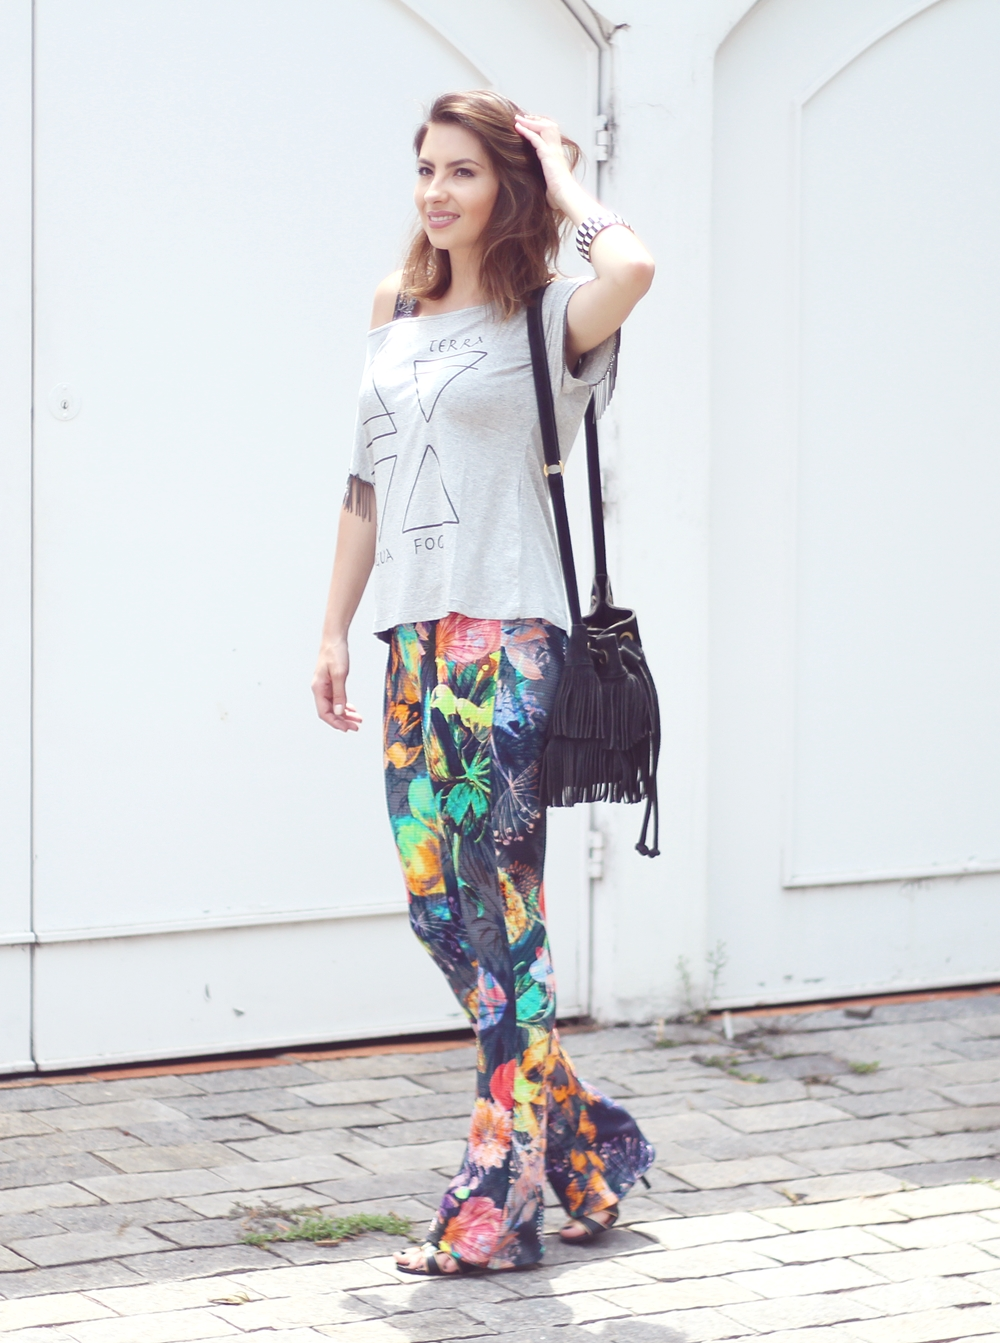 vanduarte-mix-estampas-look1-flare-tshirt-6